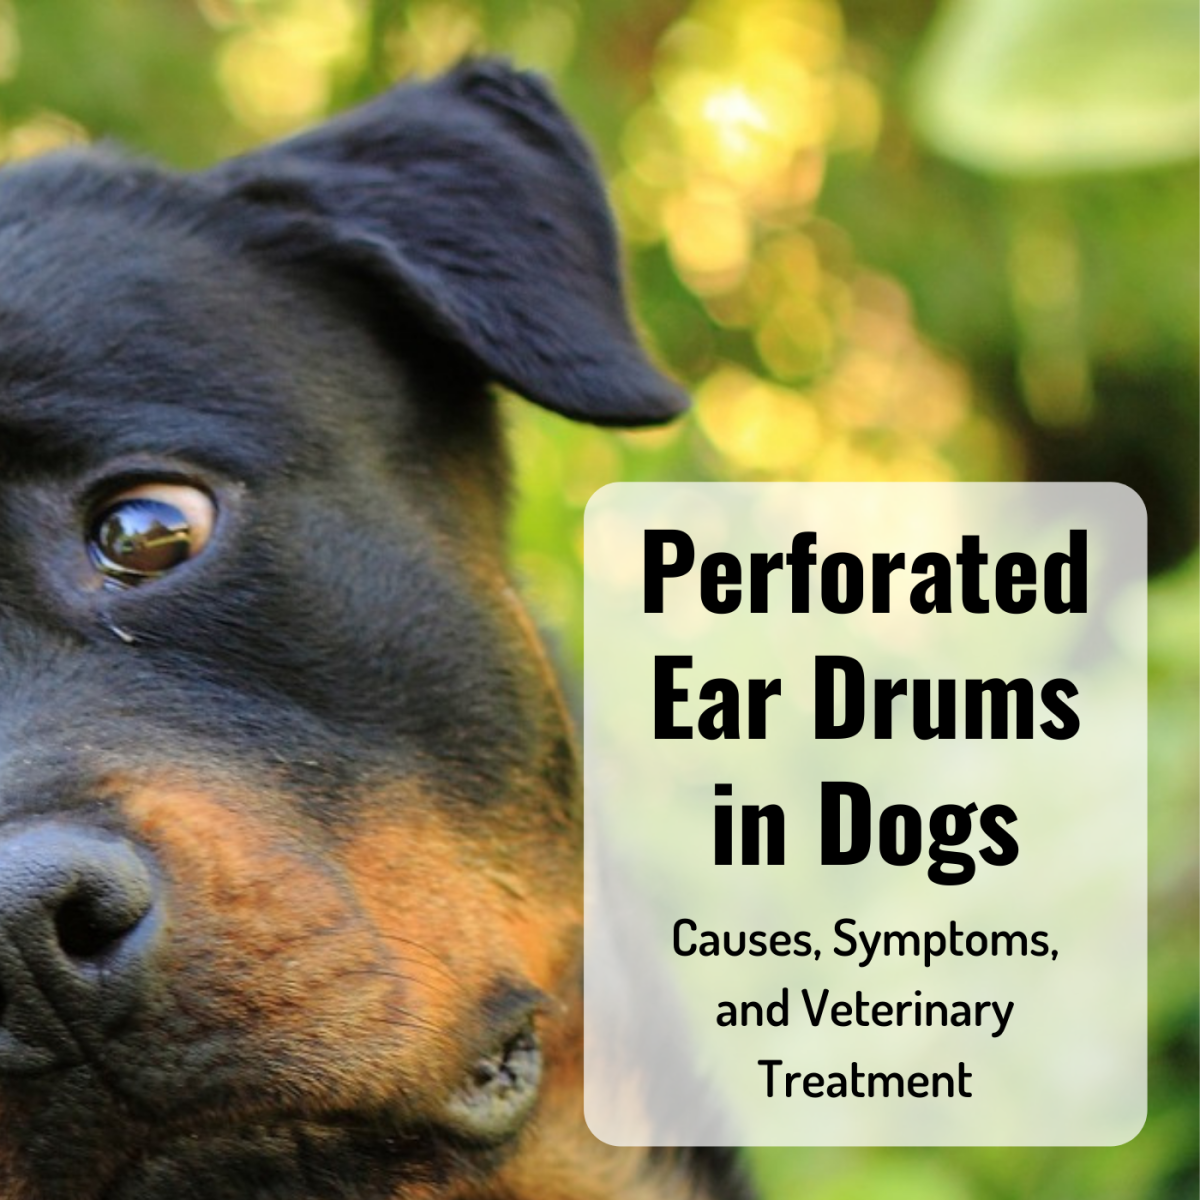 Learn more about your dog's eardrum and how it can get ruptured. Review some common signs of a perforated eardrum, and learn how your vet might treat it.